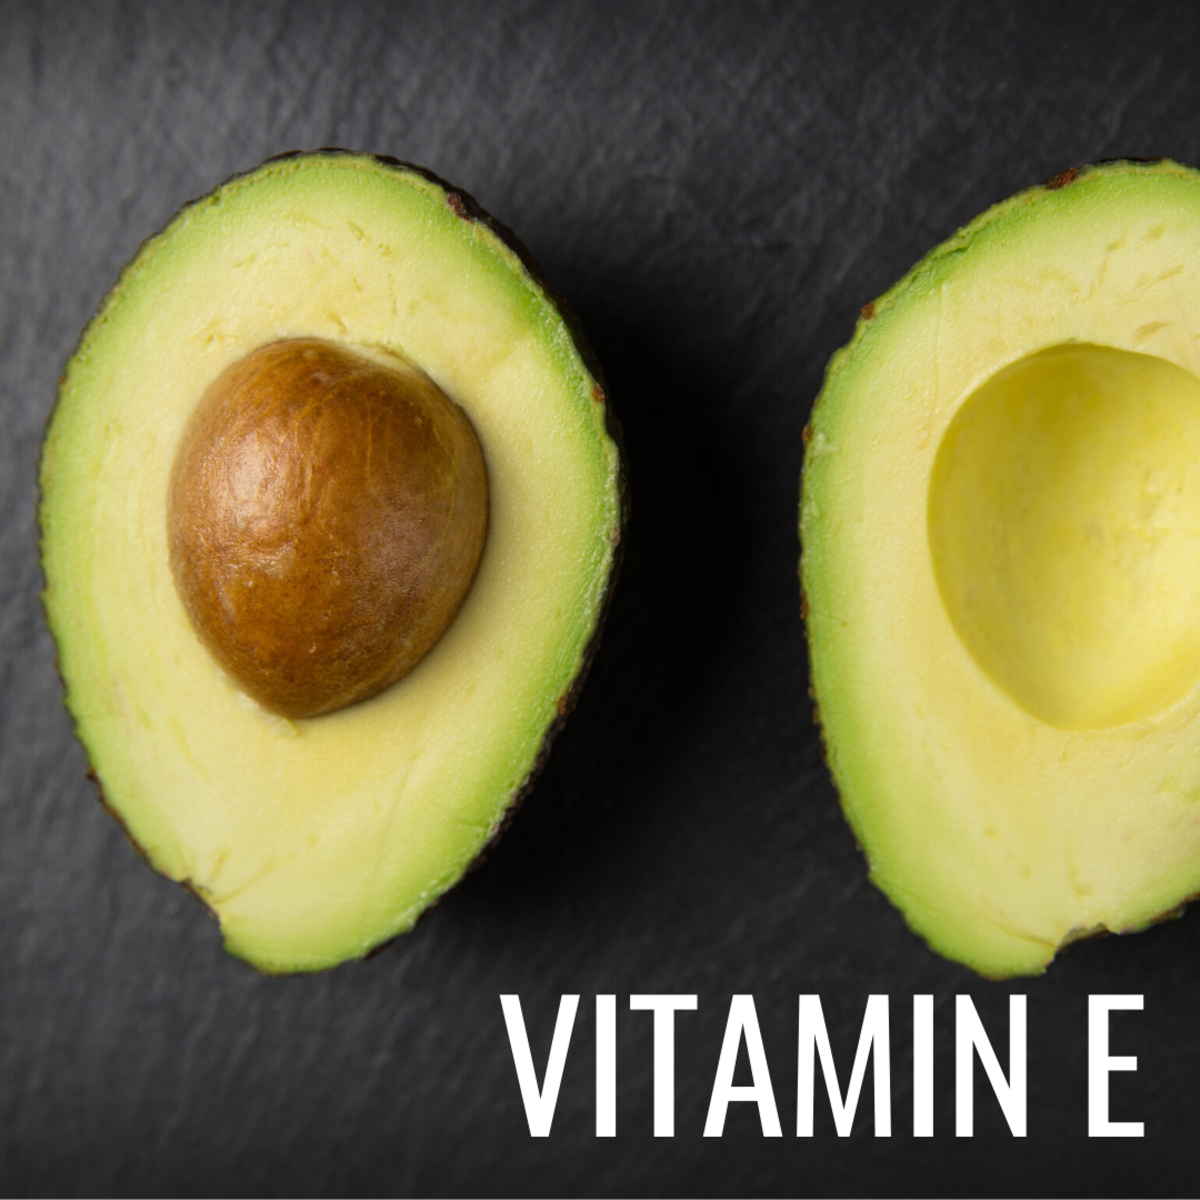 Vitamin E-rich foods are a great addition to your diet if you have melasma.